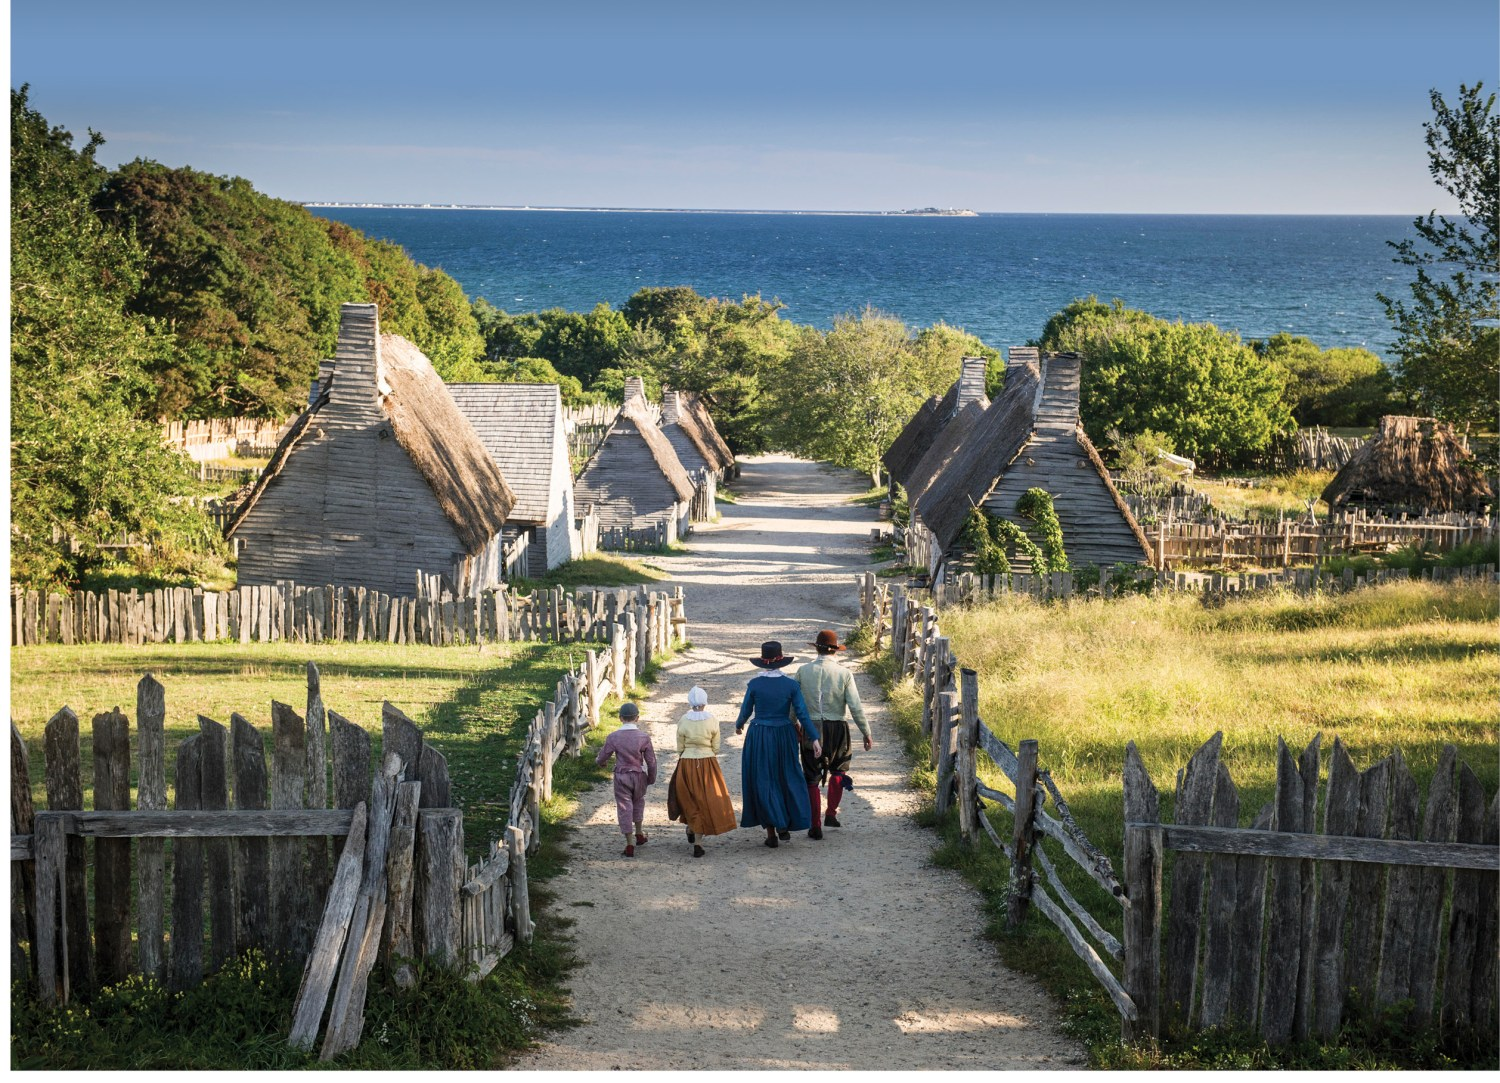 above Overlooking the landscape at Plimoth Plantation, a living-history museum recreating Plymouth Colony in Massachusetts, which helps to tell the Mayflower's story.